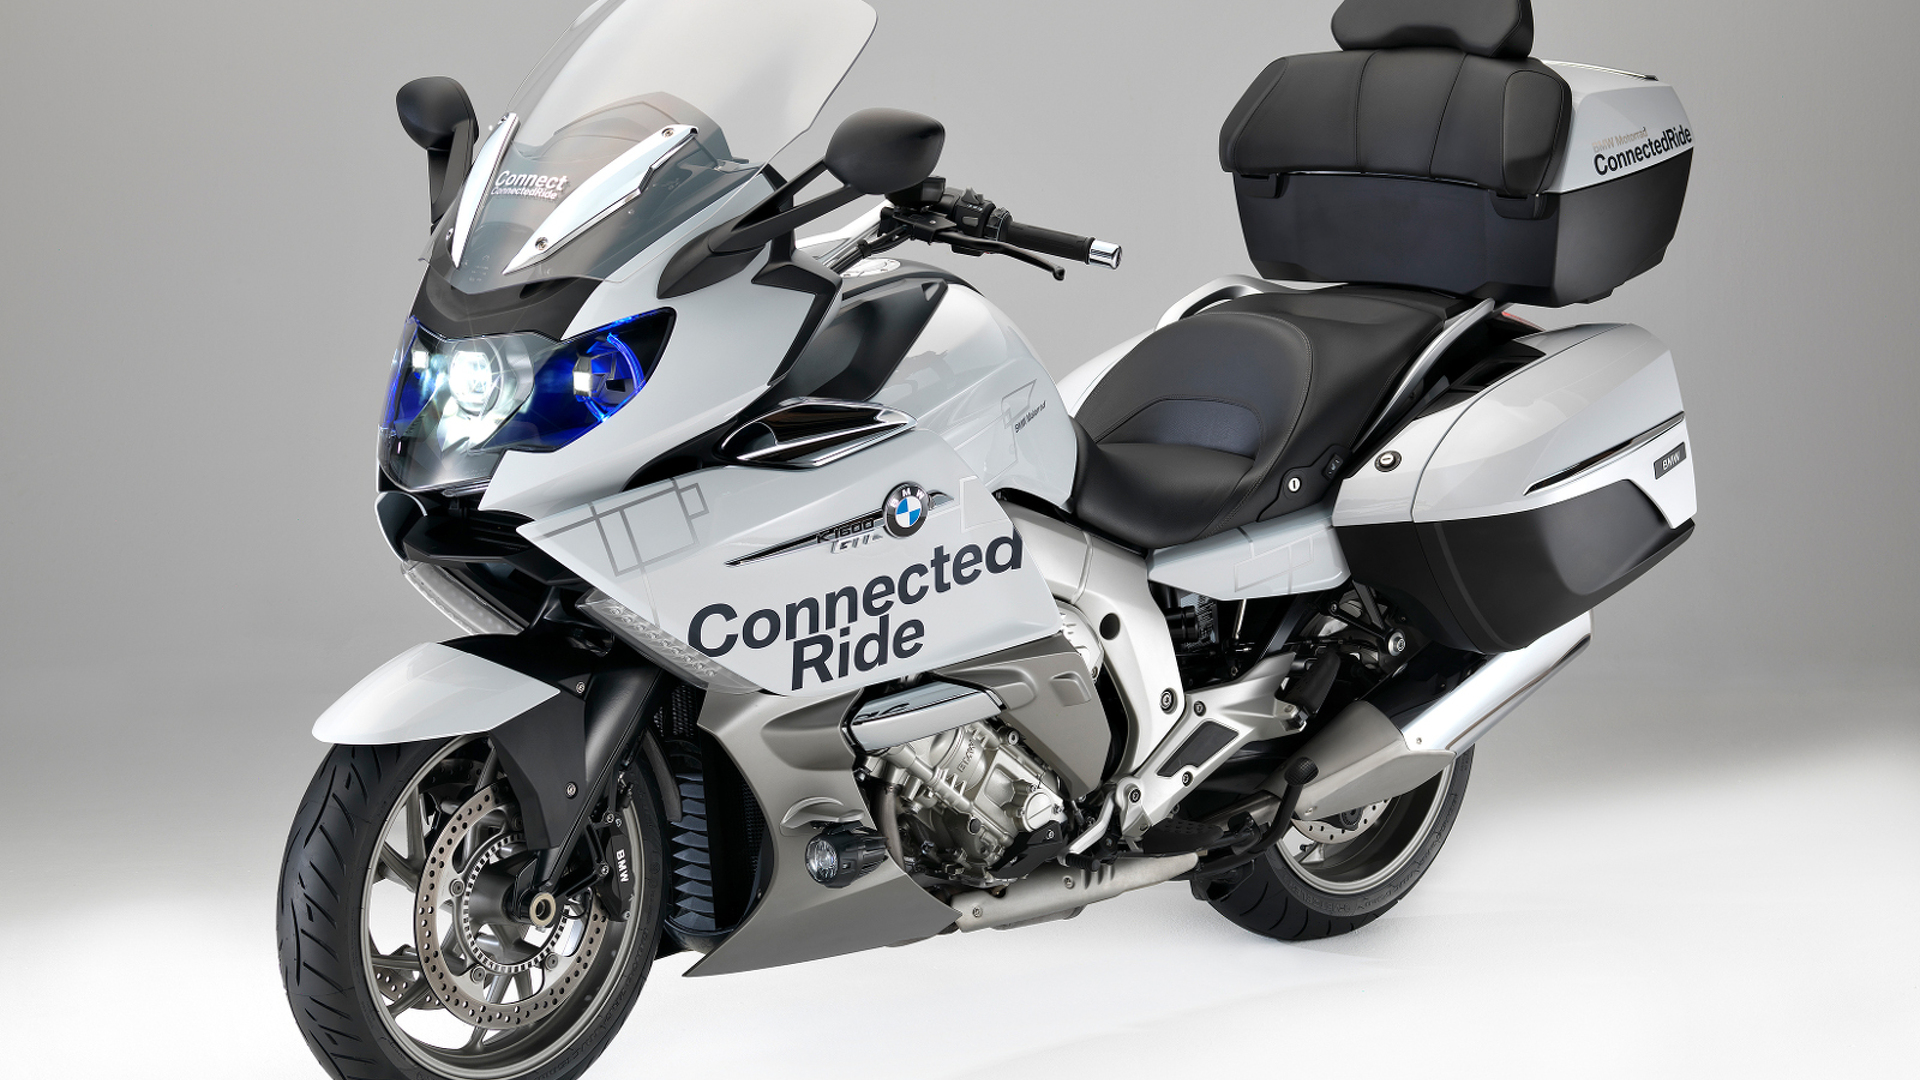 bmw k 1600 gtl concept unveiled with laser headlights